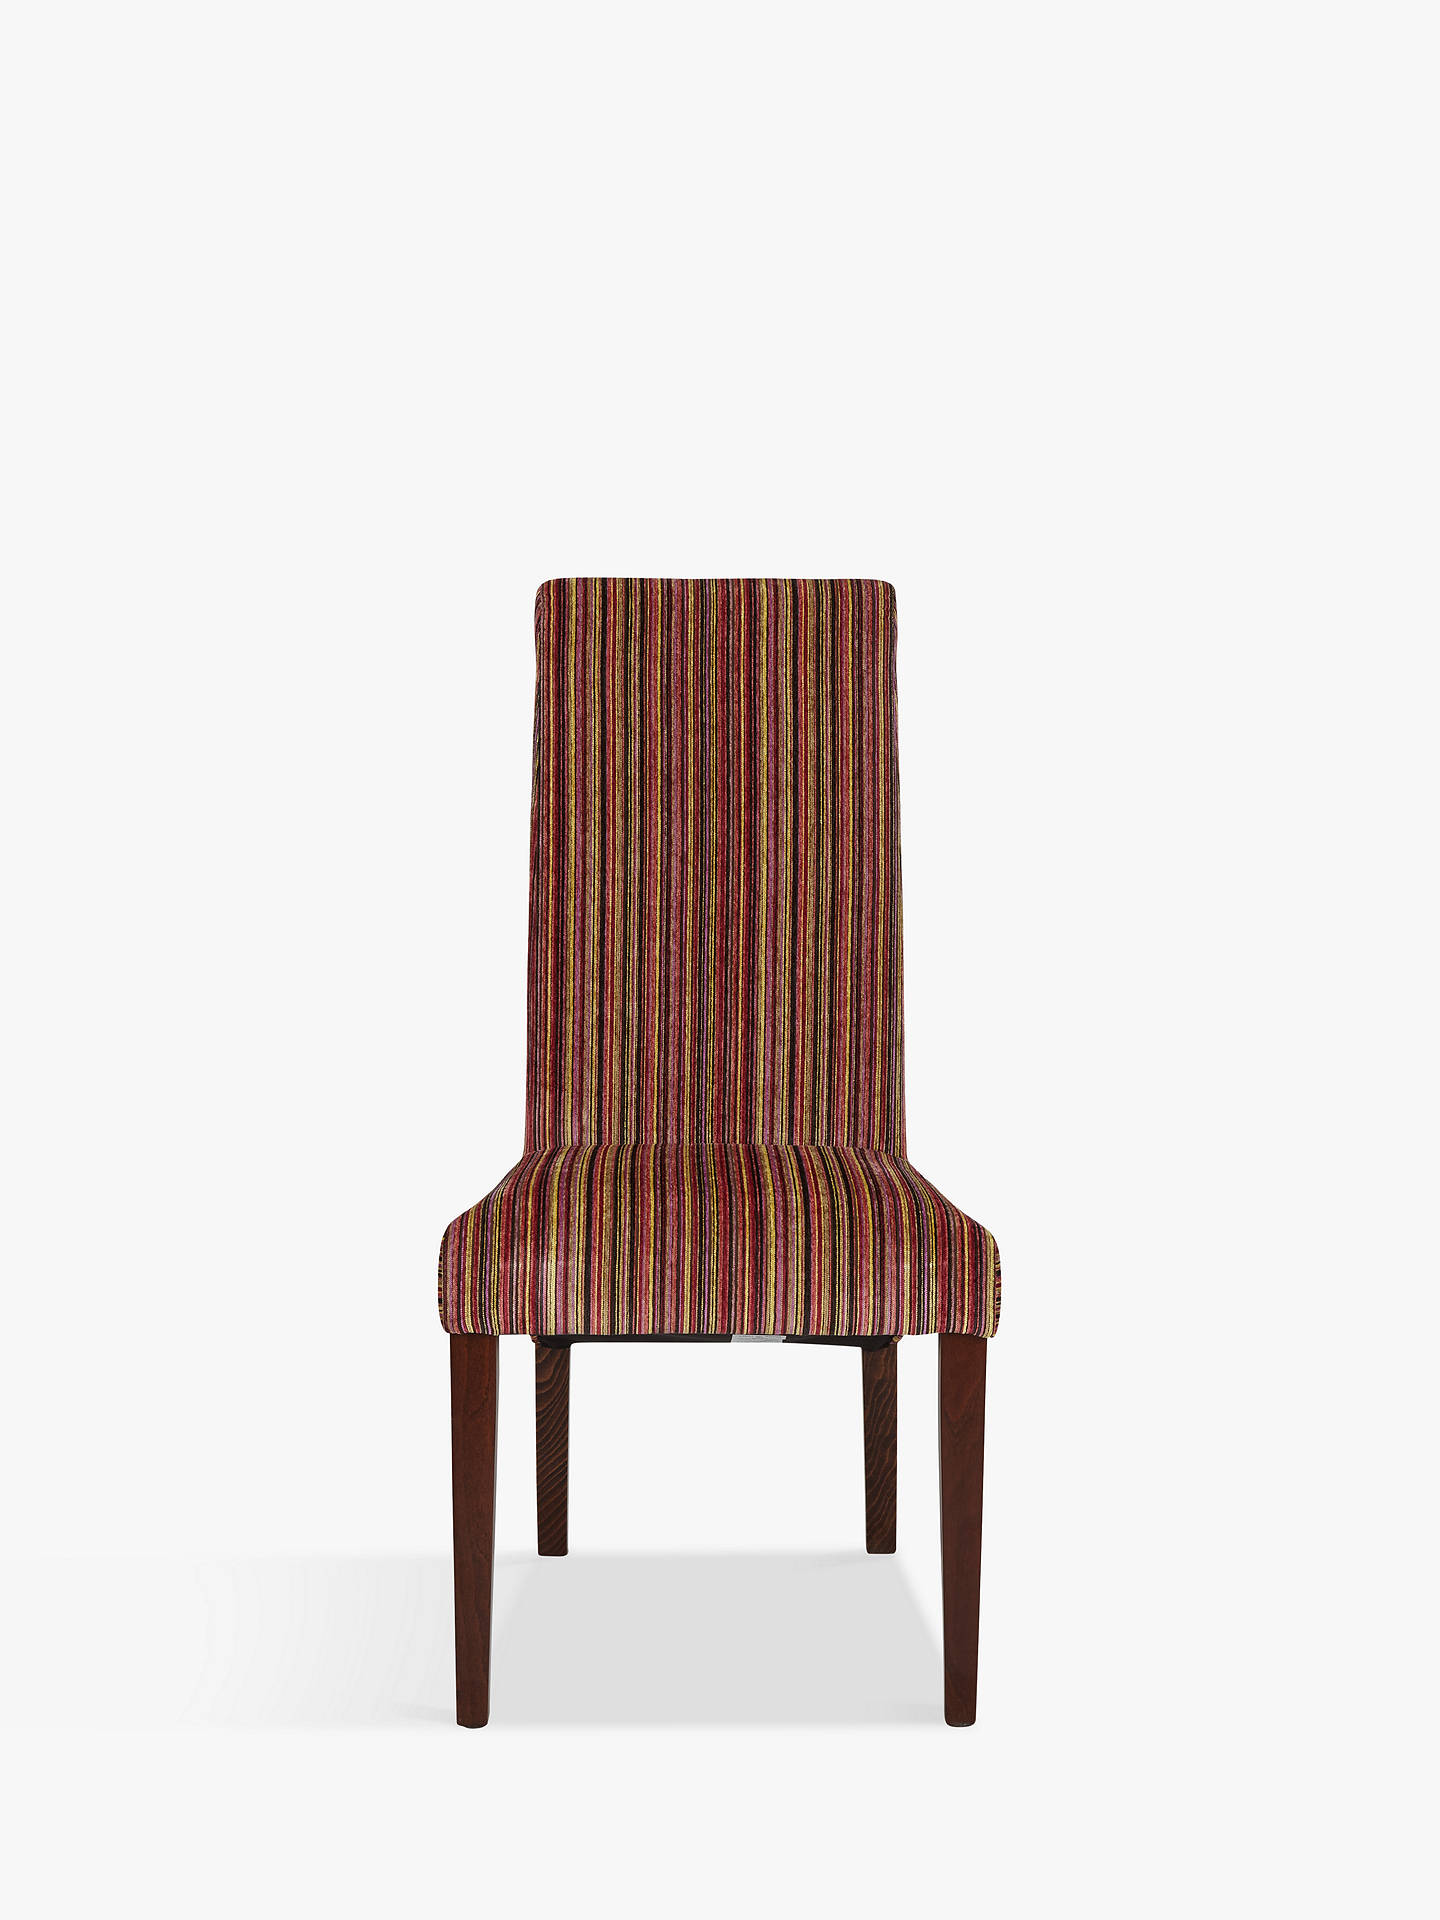 BuyJohn Lewis & Partners Maharani Upholstered Dining Chair, Raspberry Stripe Online at johnlewis.com